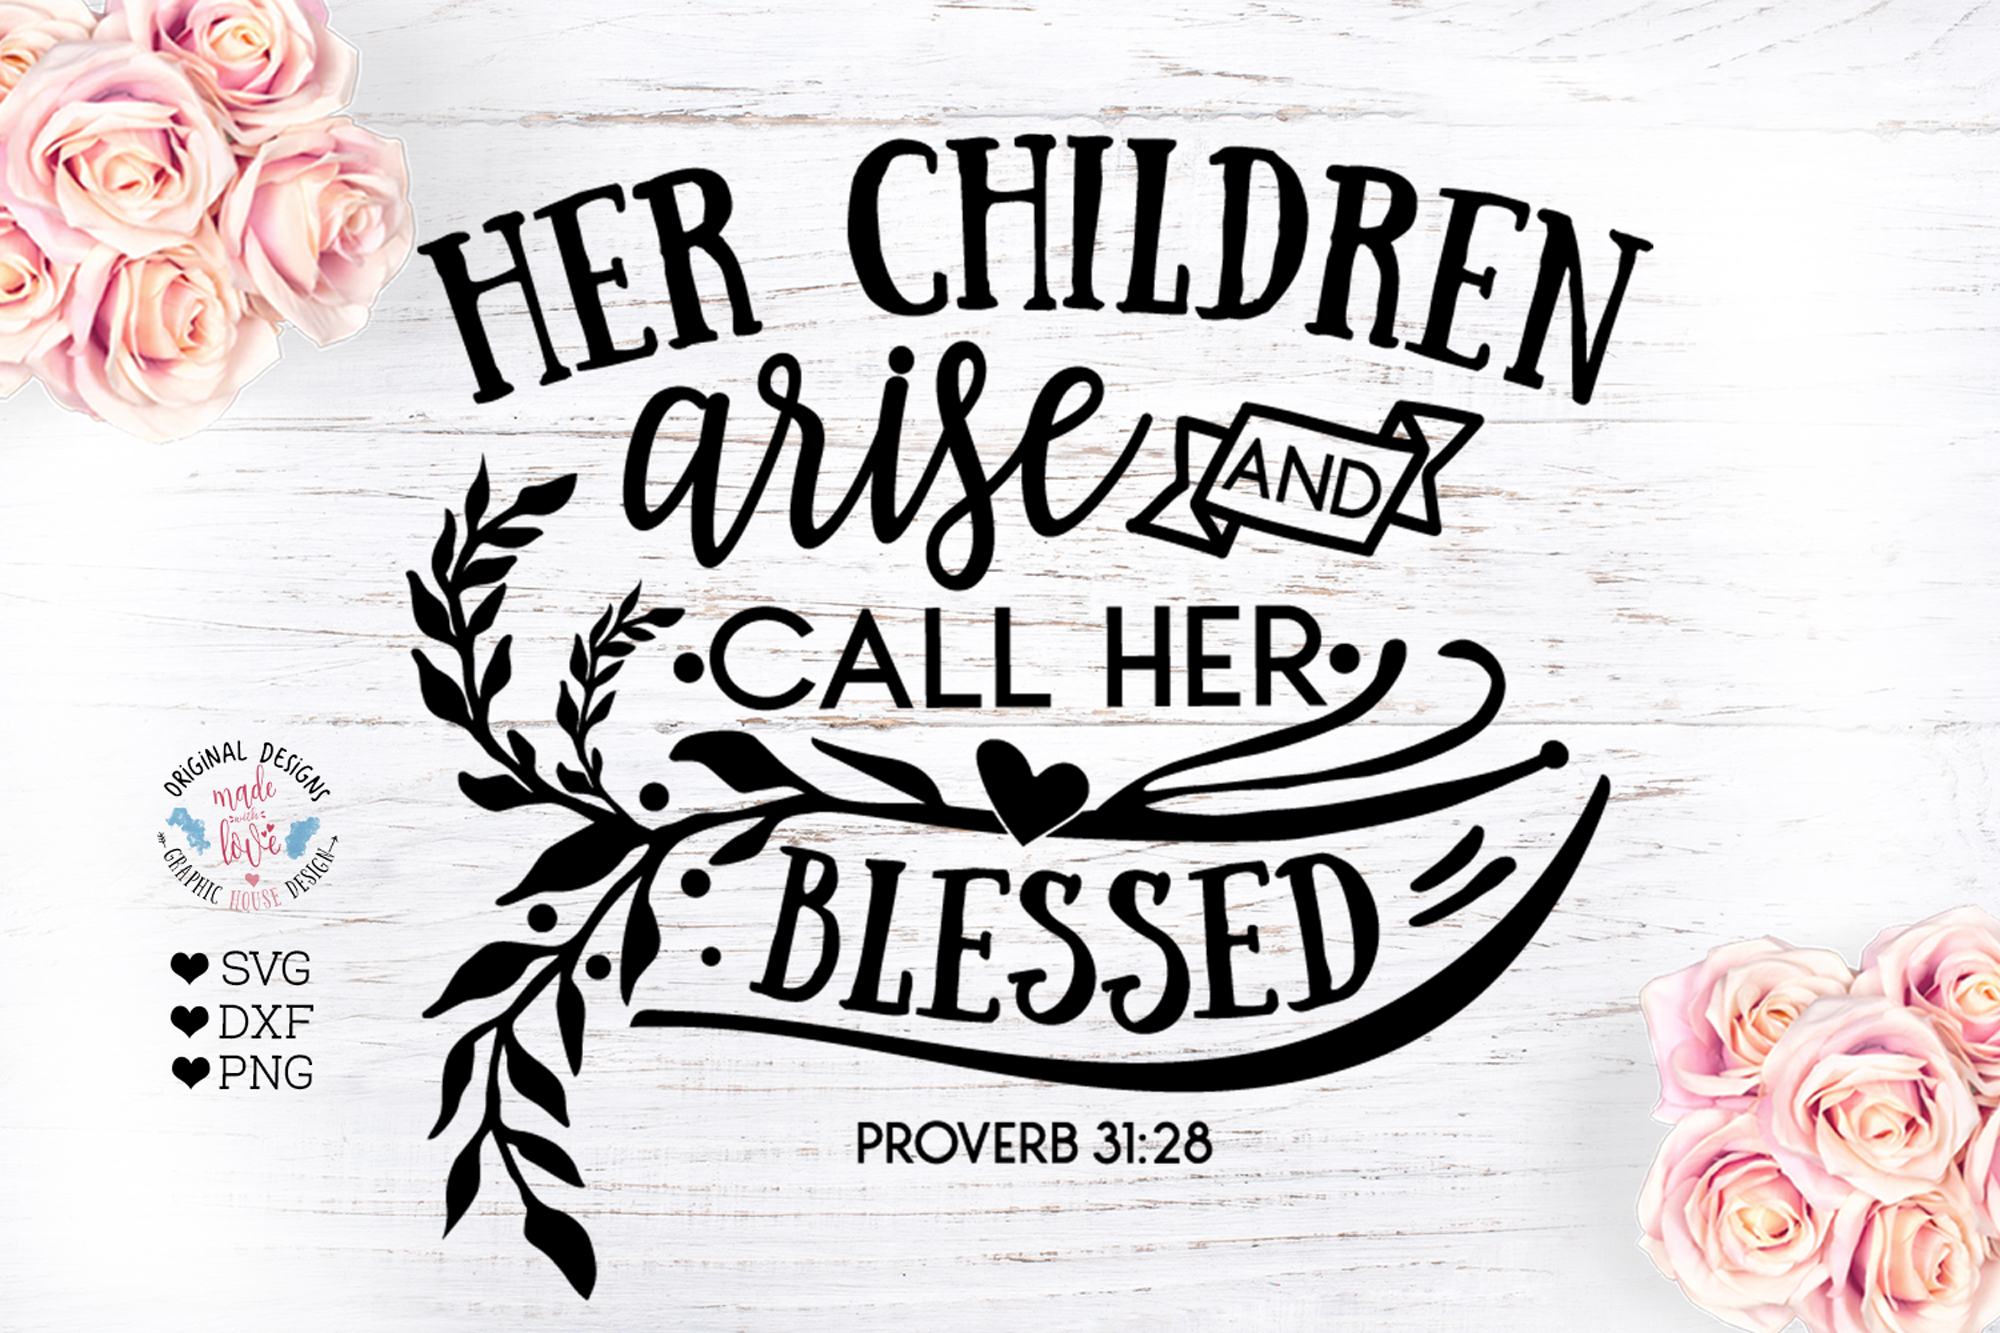 Her children arise and Call Her Blessed - Mom Bible Verse example image 1